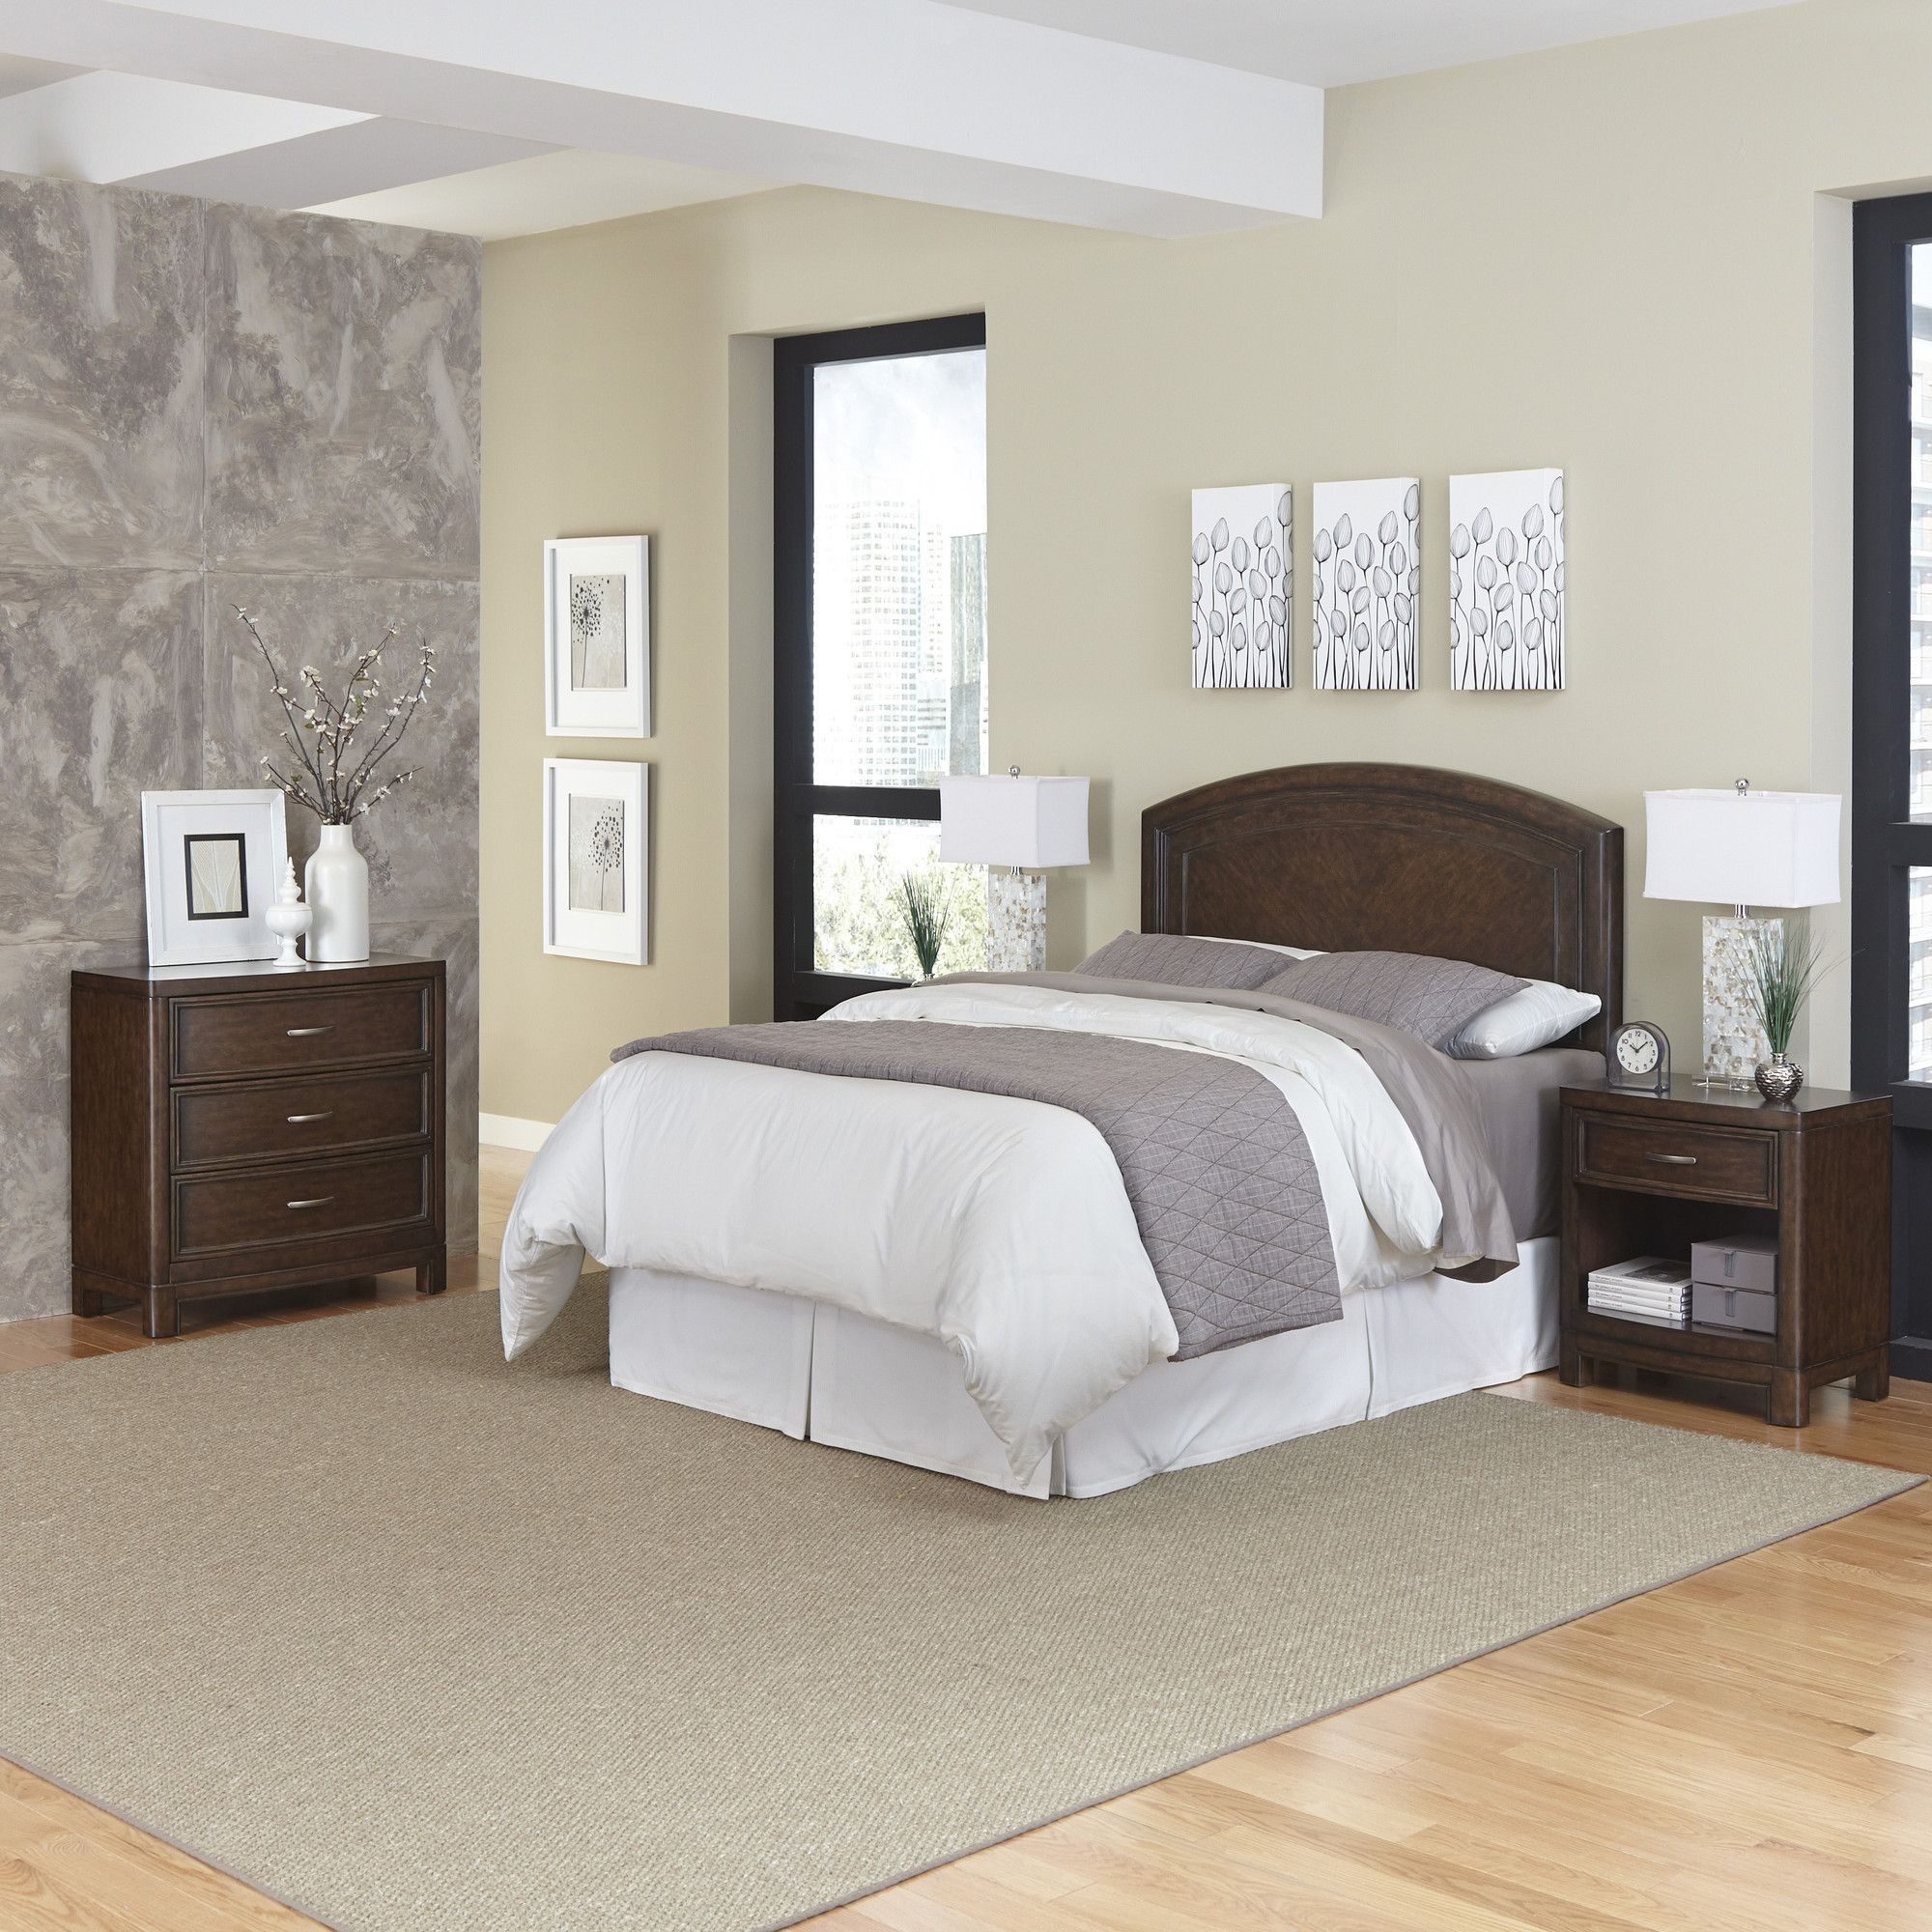 Best Crescent Hill Standard 3 Piece Dresser Set Bedroom Sets 400 x 300